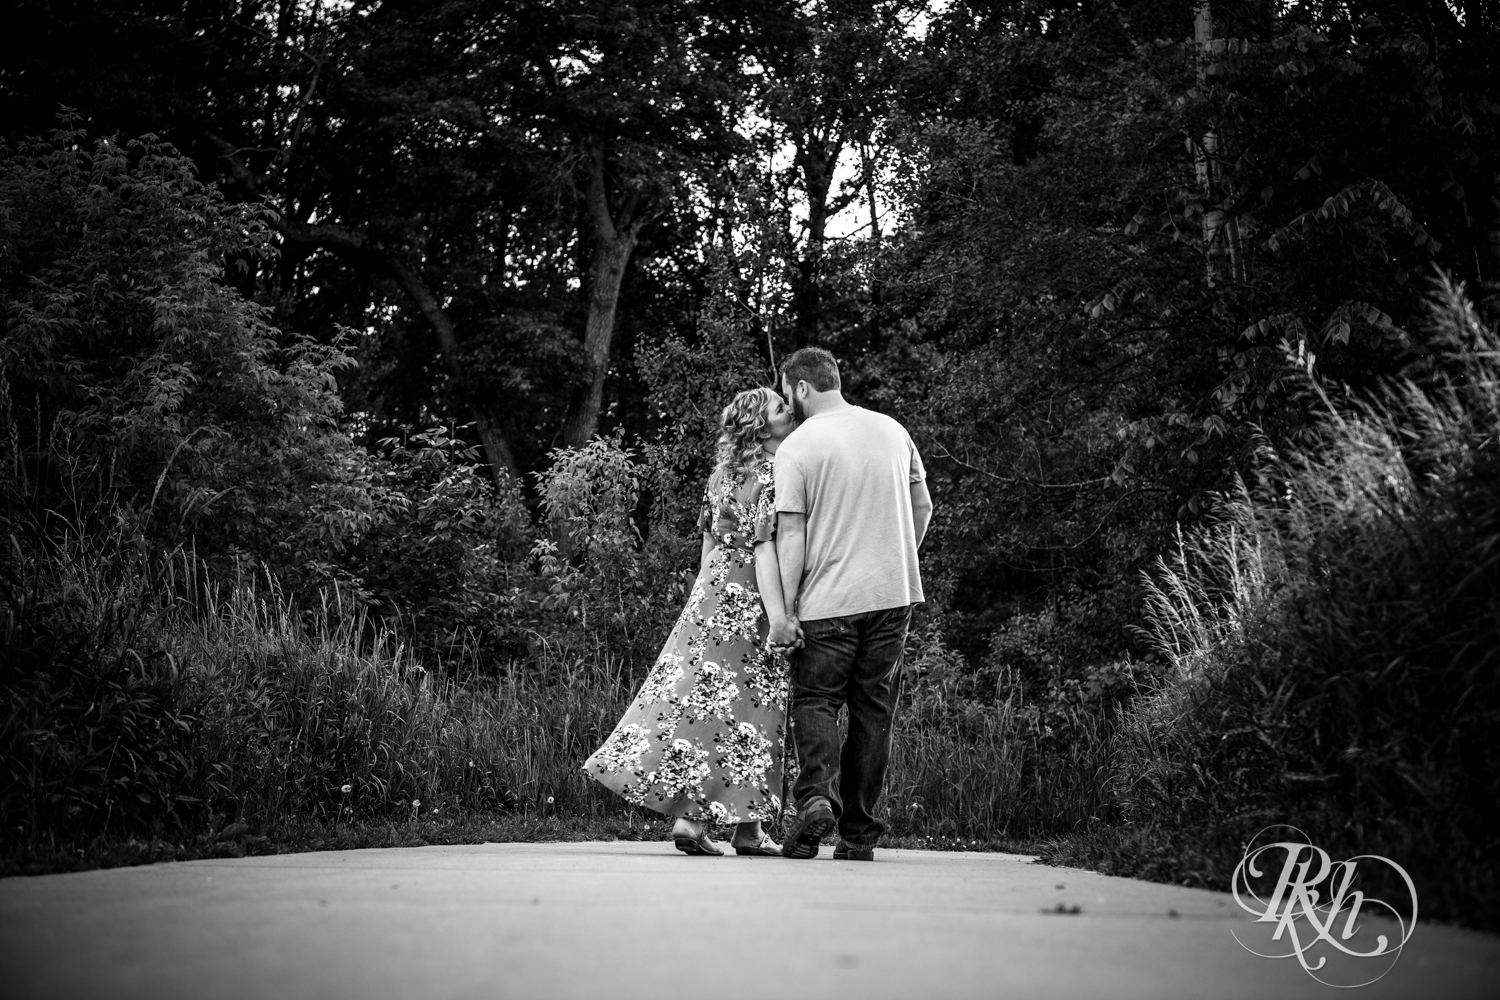 Constance & Josh - Minnesota Engagement Photography - Lebanon Hills Regional Park - RKH Images - Blog (12 of 18).jpg